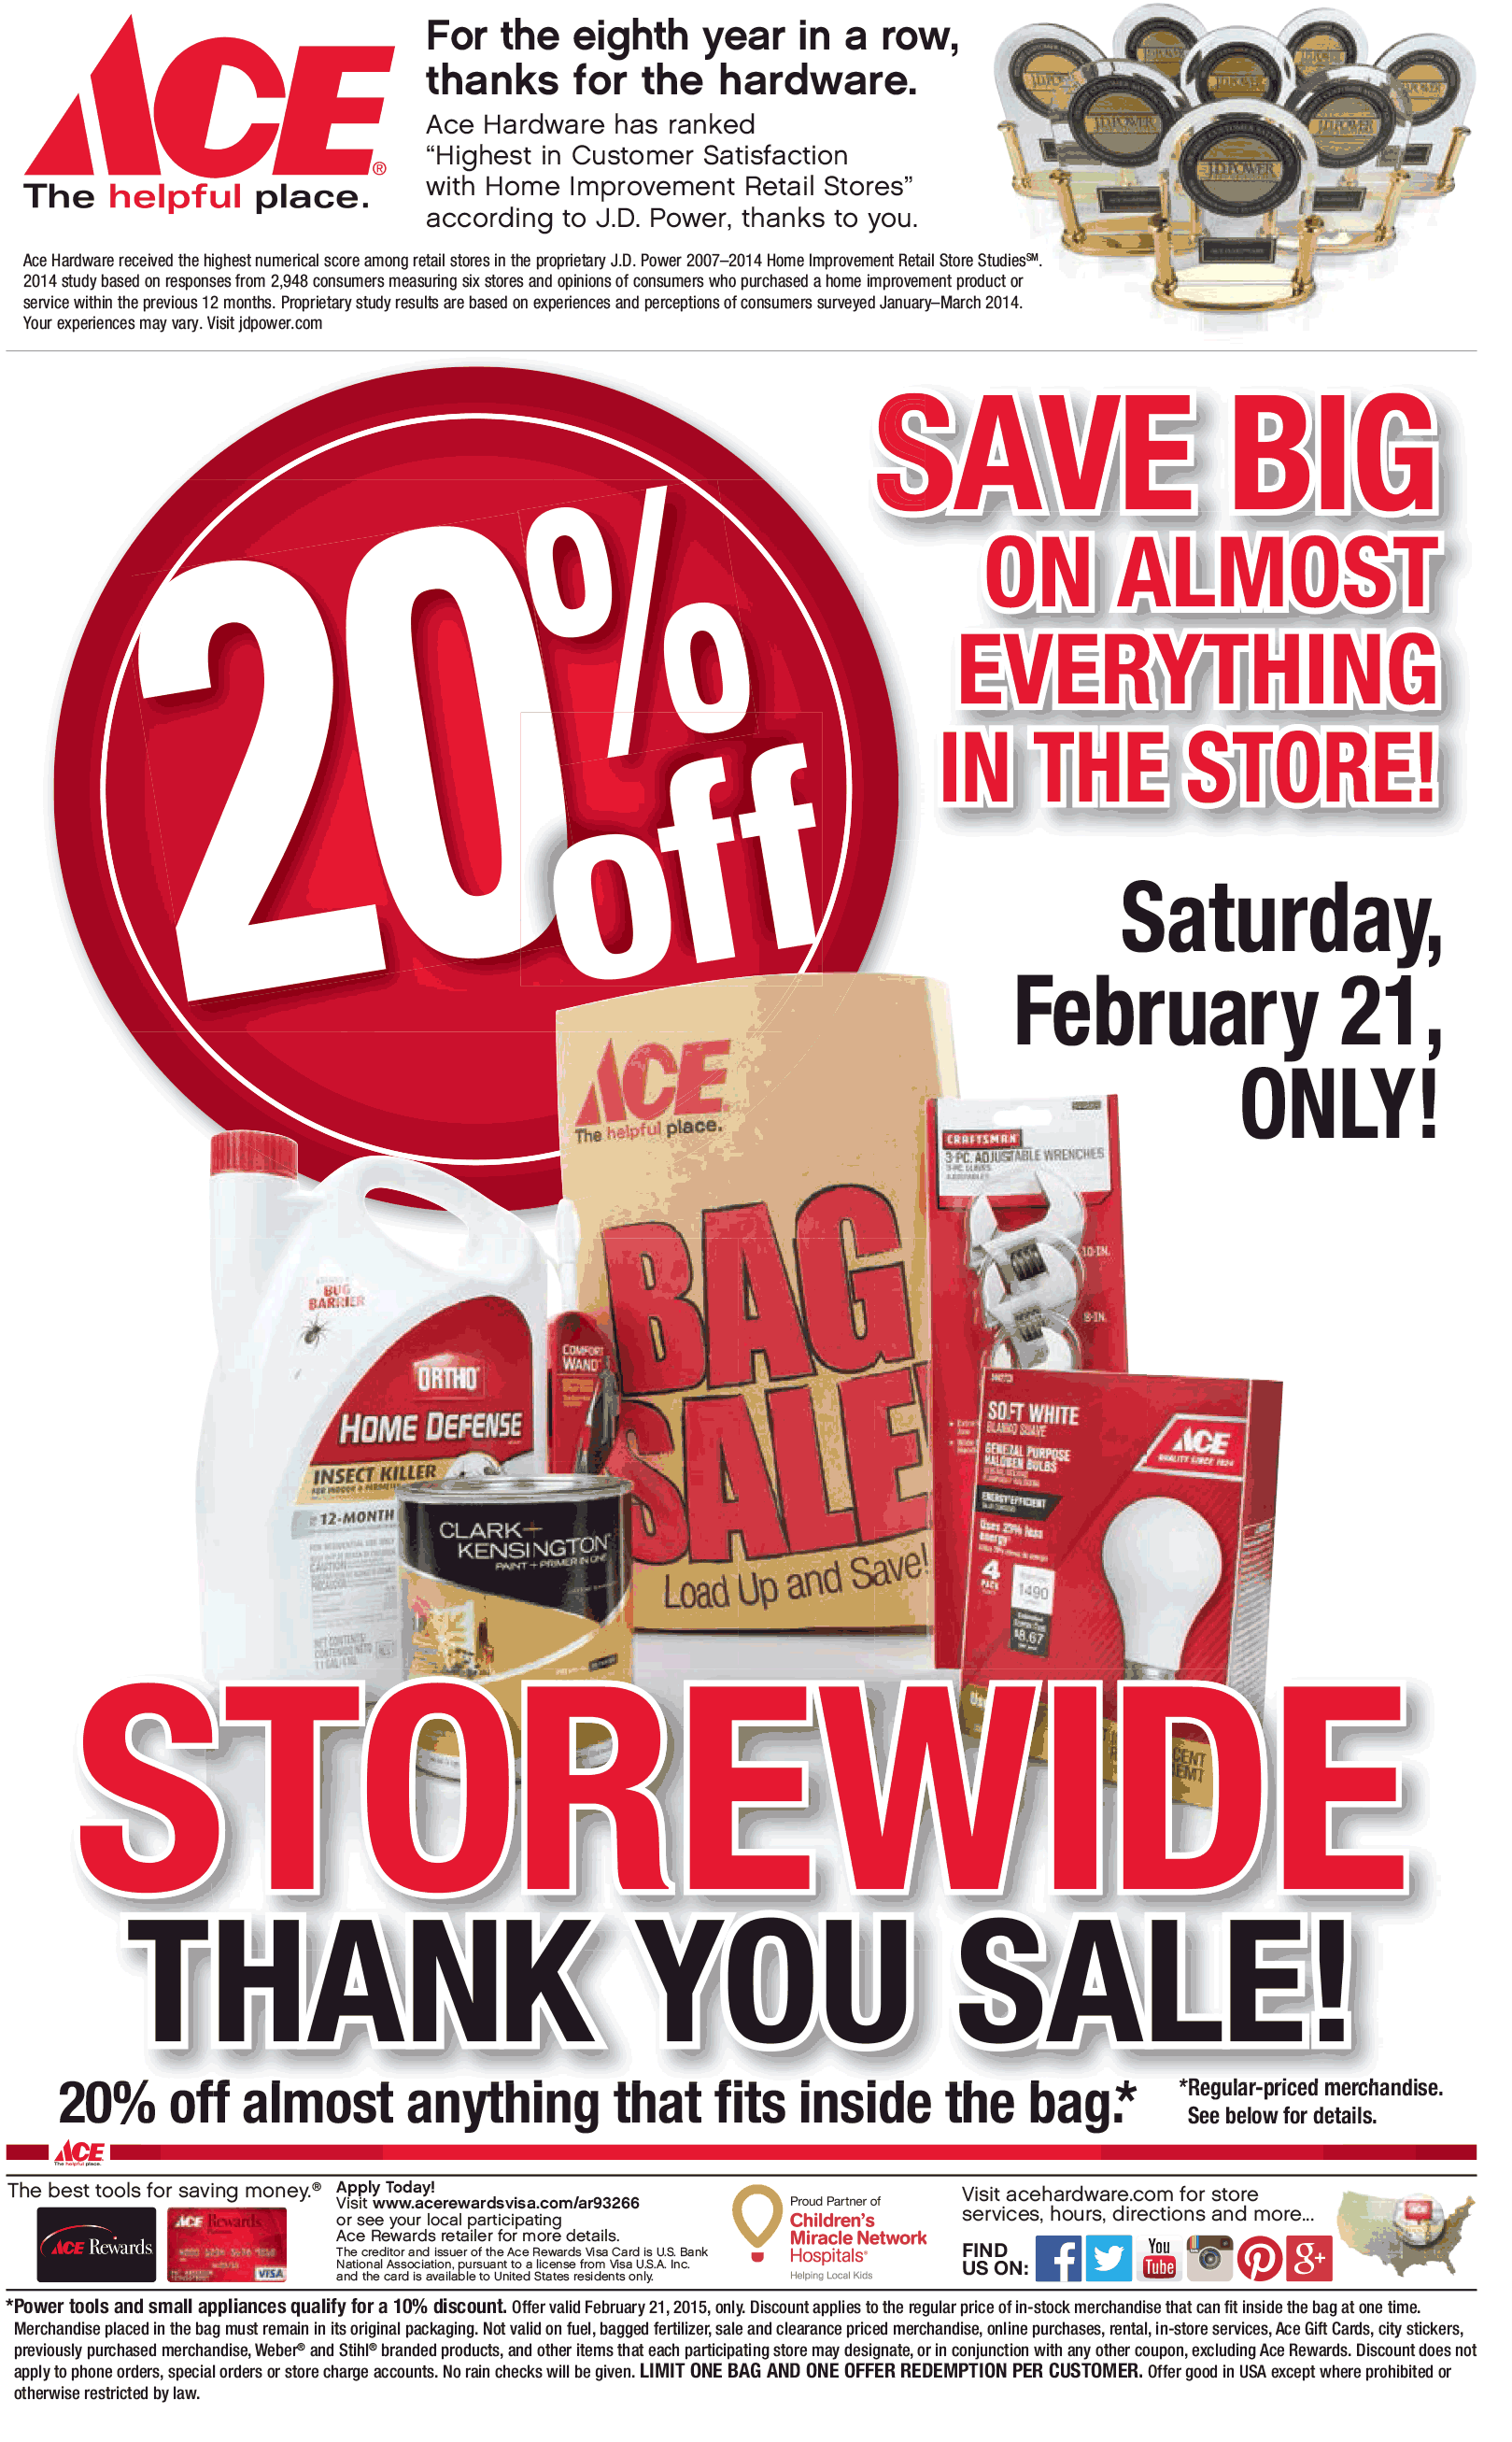 Ace Hardware Coupon November 2018 20% off whatever fits in the bag Saturday at Ace Hardware